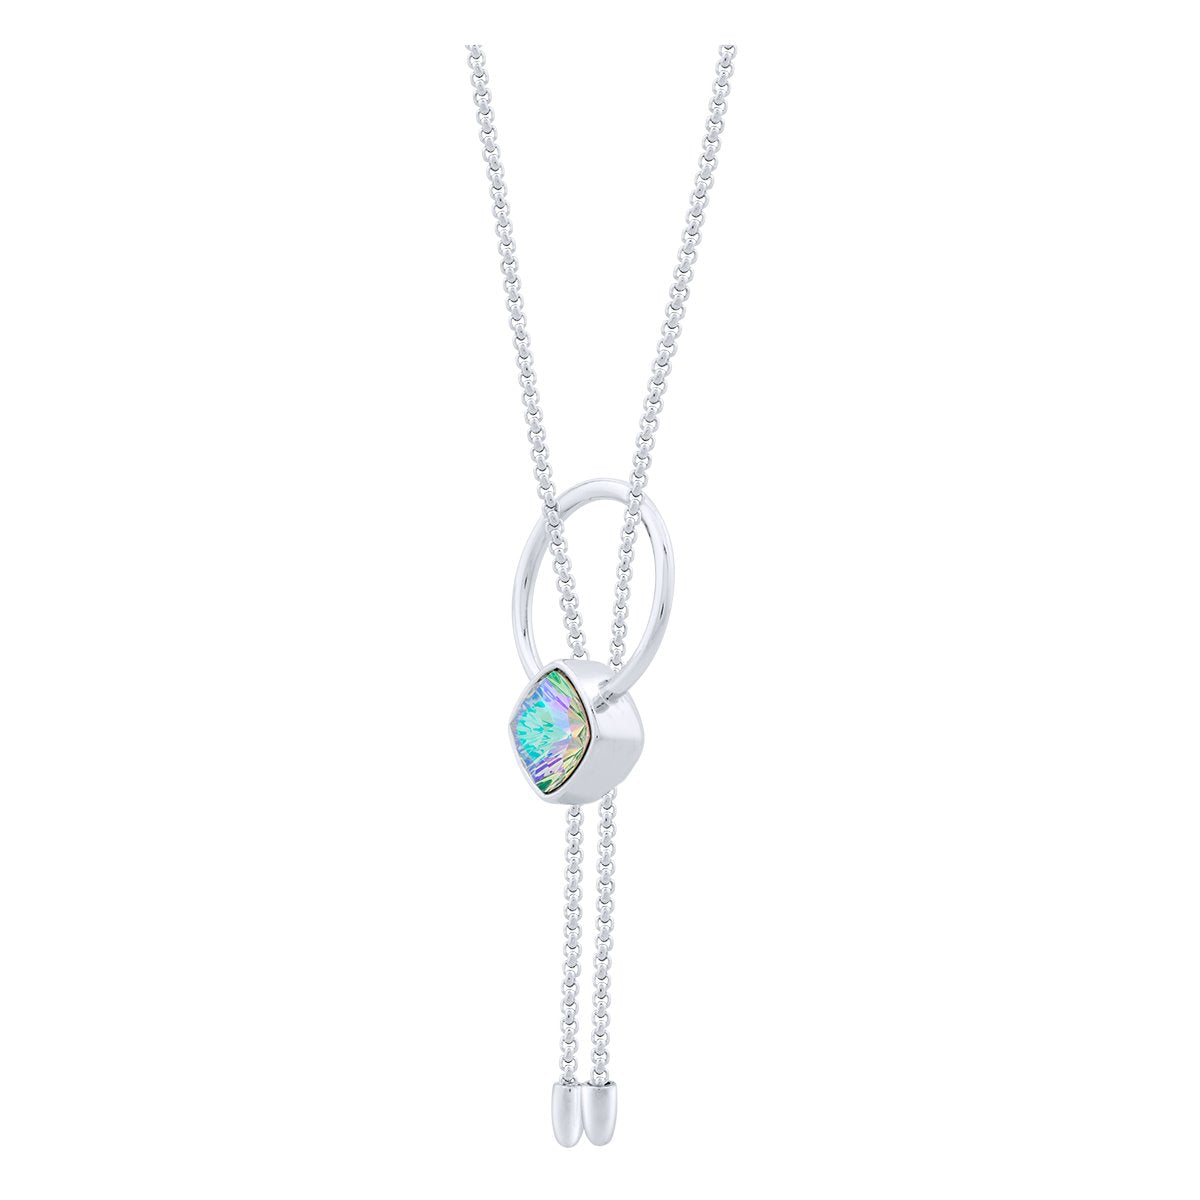 Louvre Necklace Silver Paradise Shine JOY OF SPARKLE FOREVER CRYSTALS